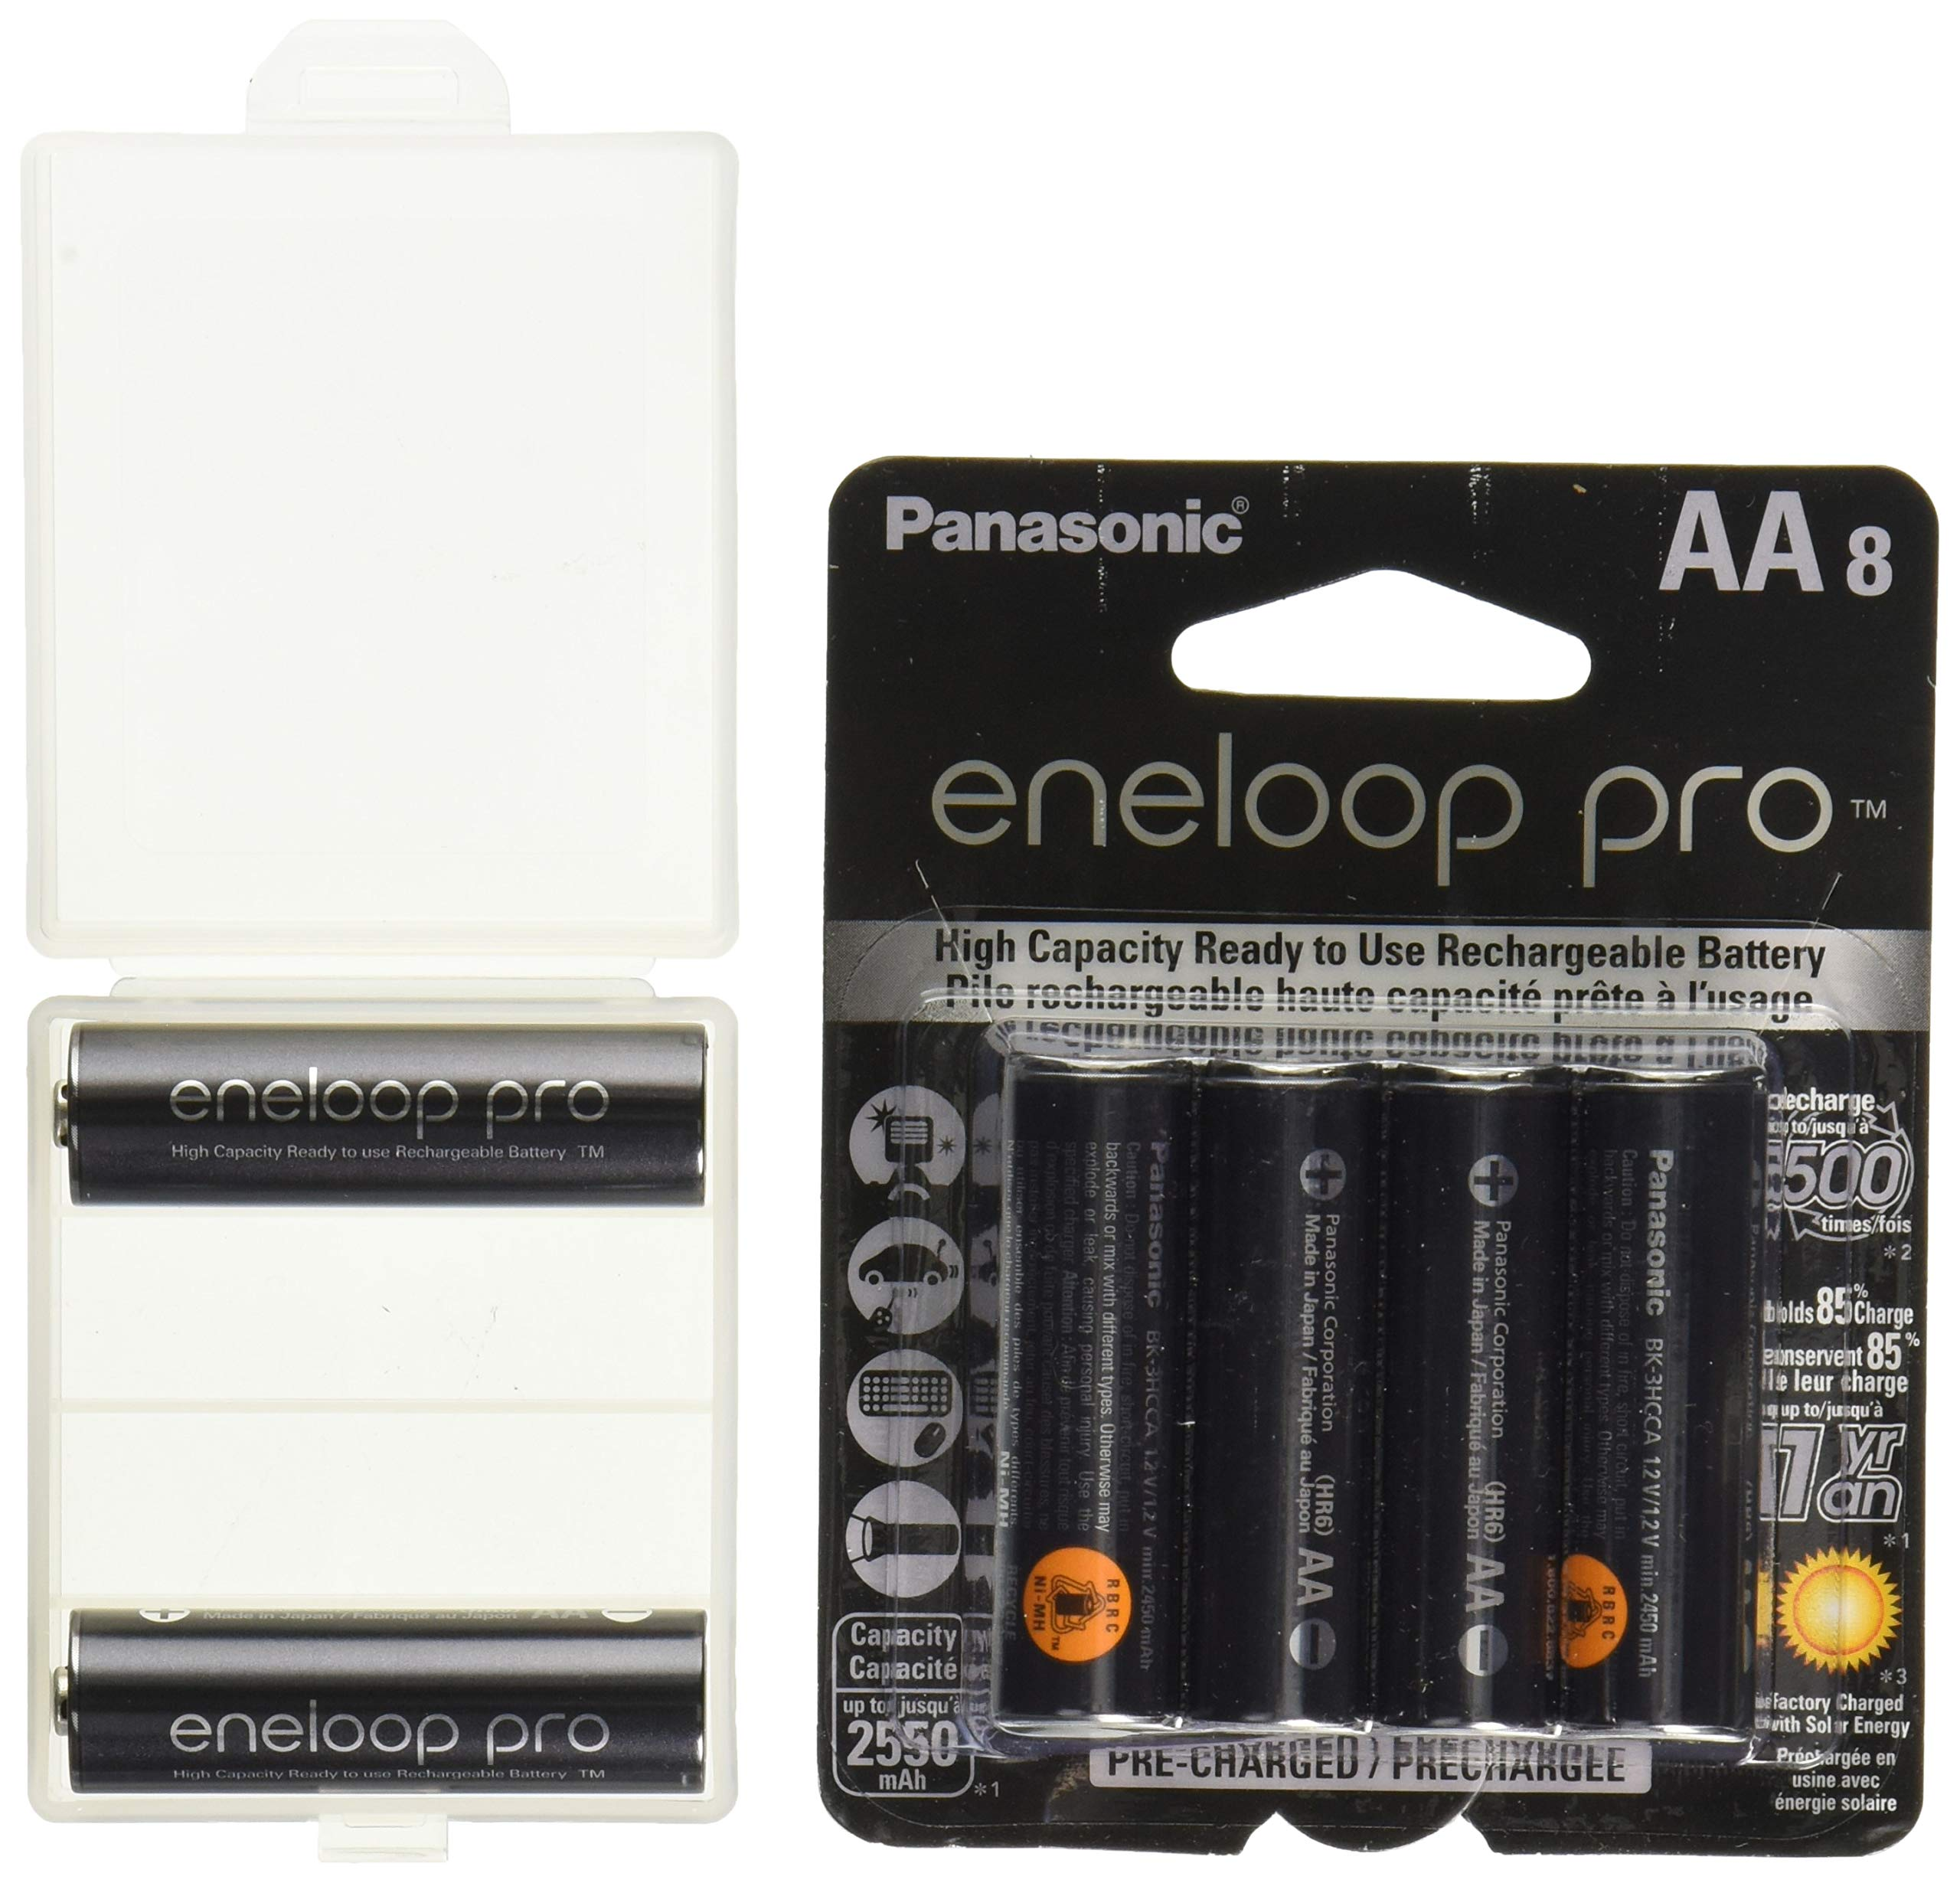 10 Panasonic eneloop pro AA High Capacity Ni-MH 2550mAh (Min. 2450mAh) Pre-Charged Rechargeable Batteries + Free Battery Holder by eneloop